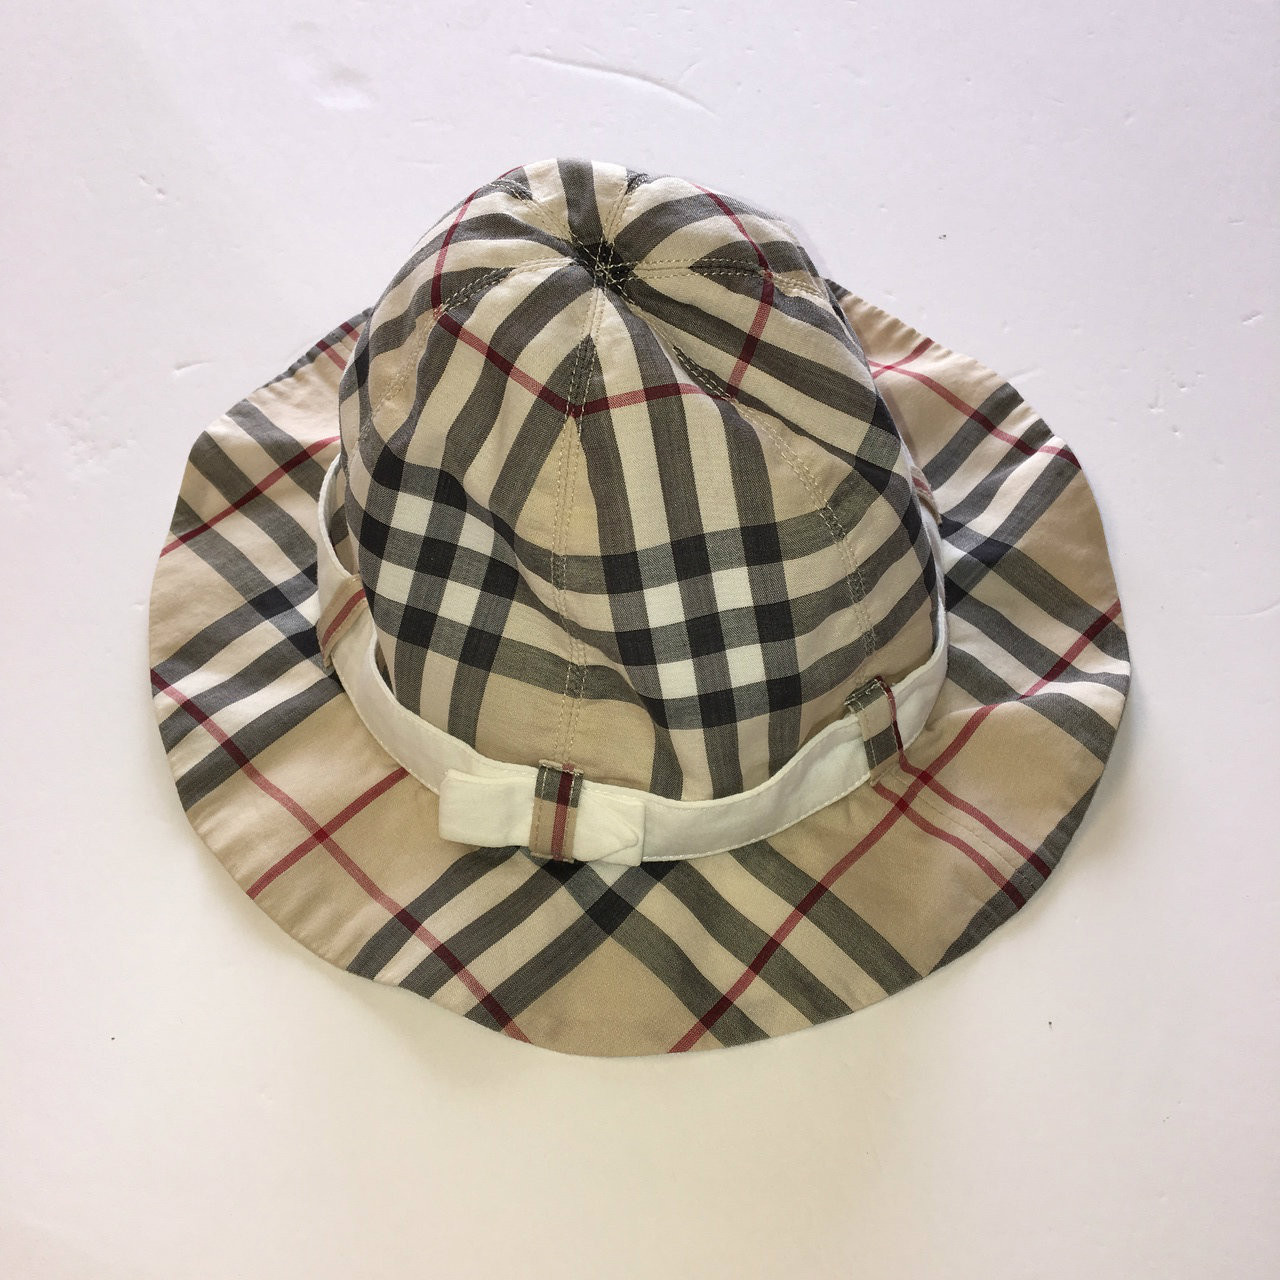 ... Burberry Classic Plaid Hat with Chin Strap. Image 1 5eea28e6004